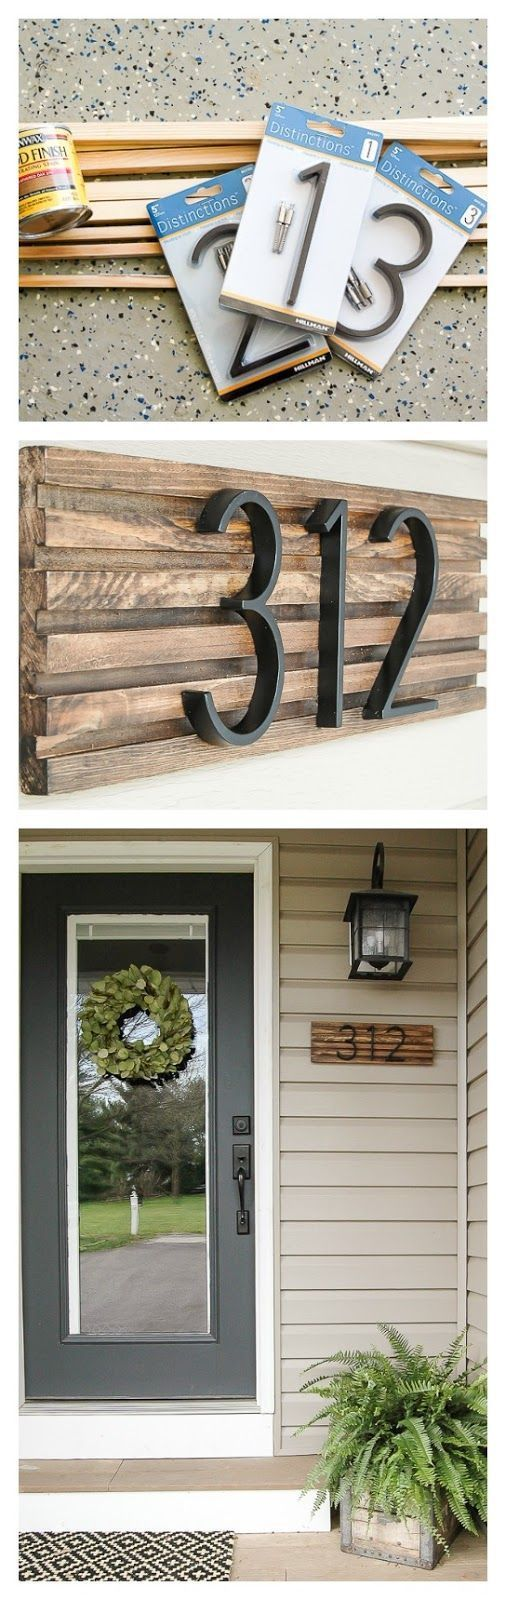 How to make a modern house number sign from square dowels. www.littlehouseoffour.com